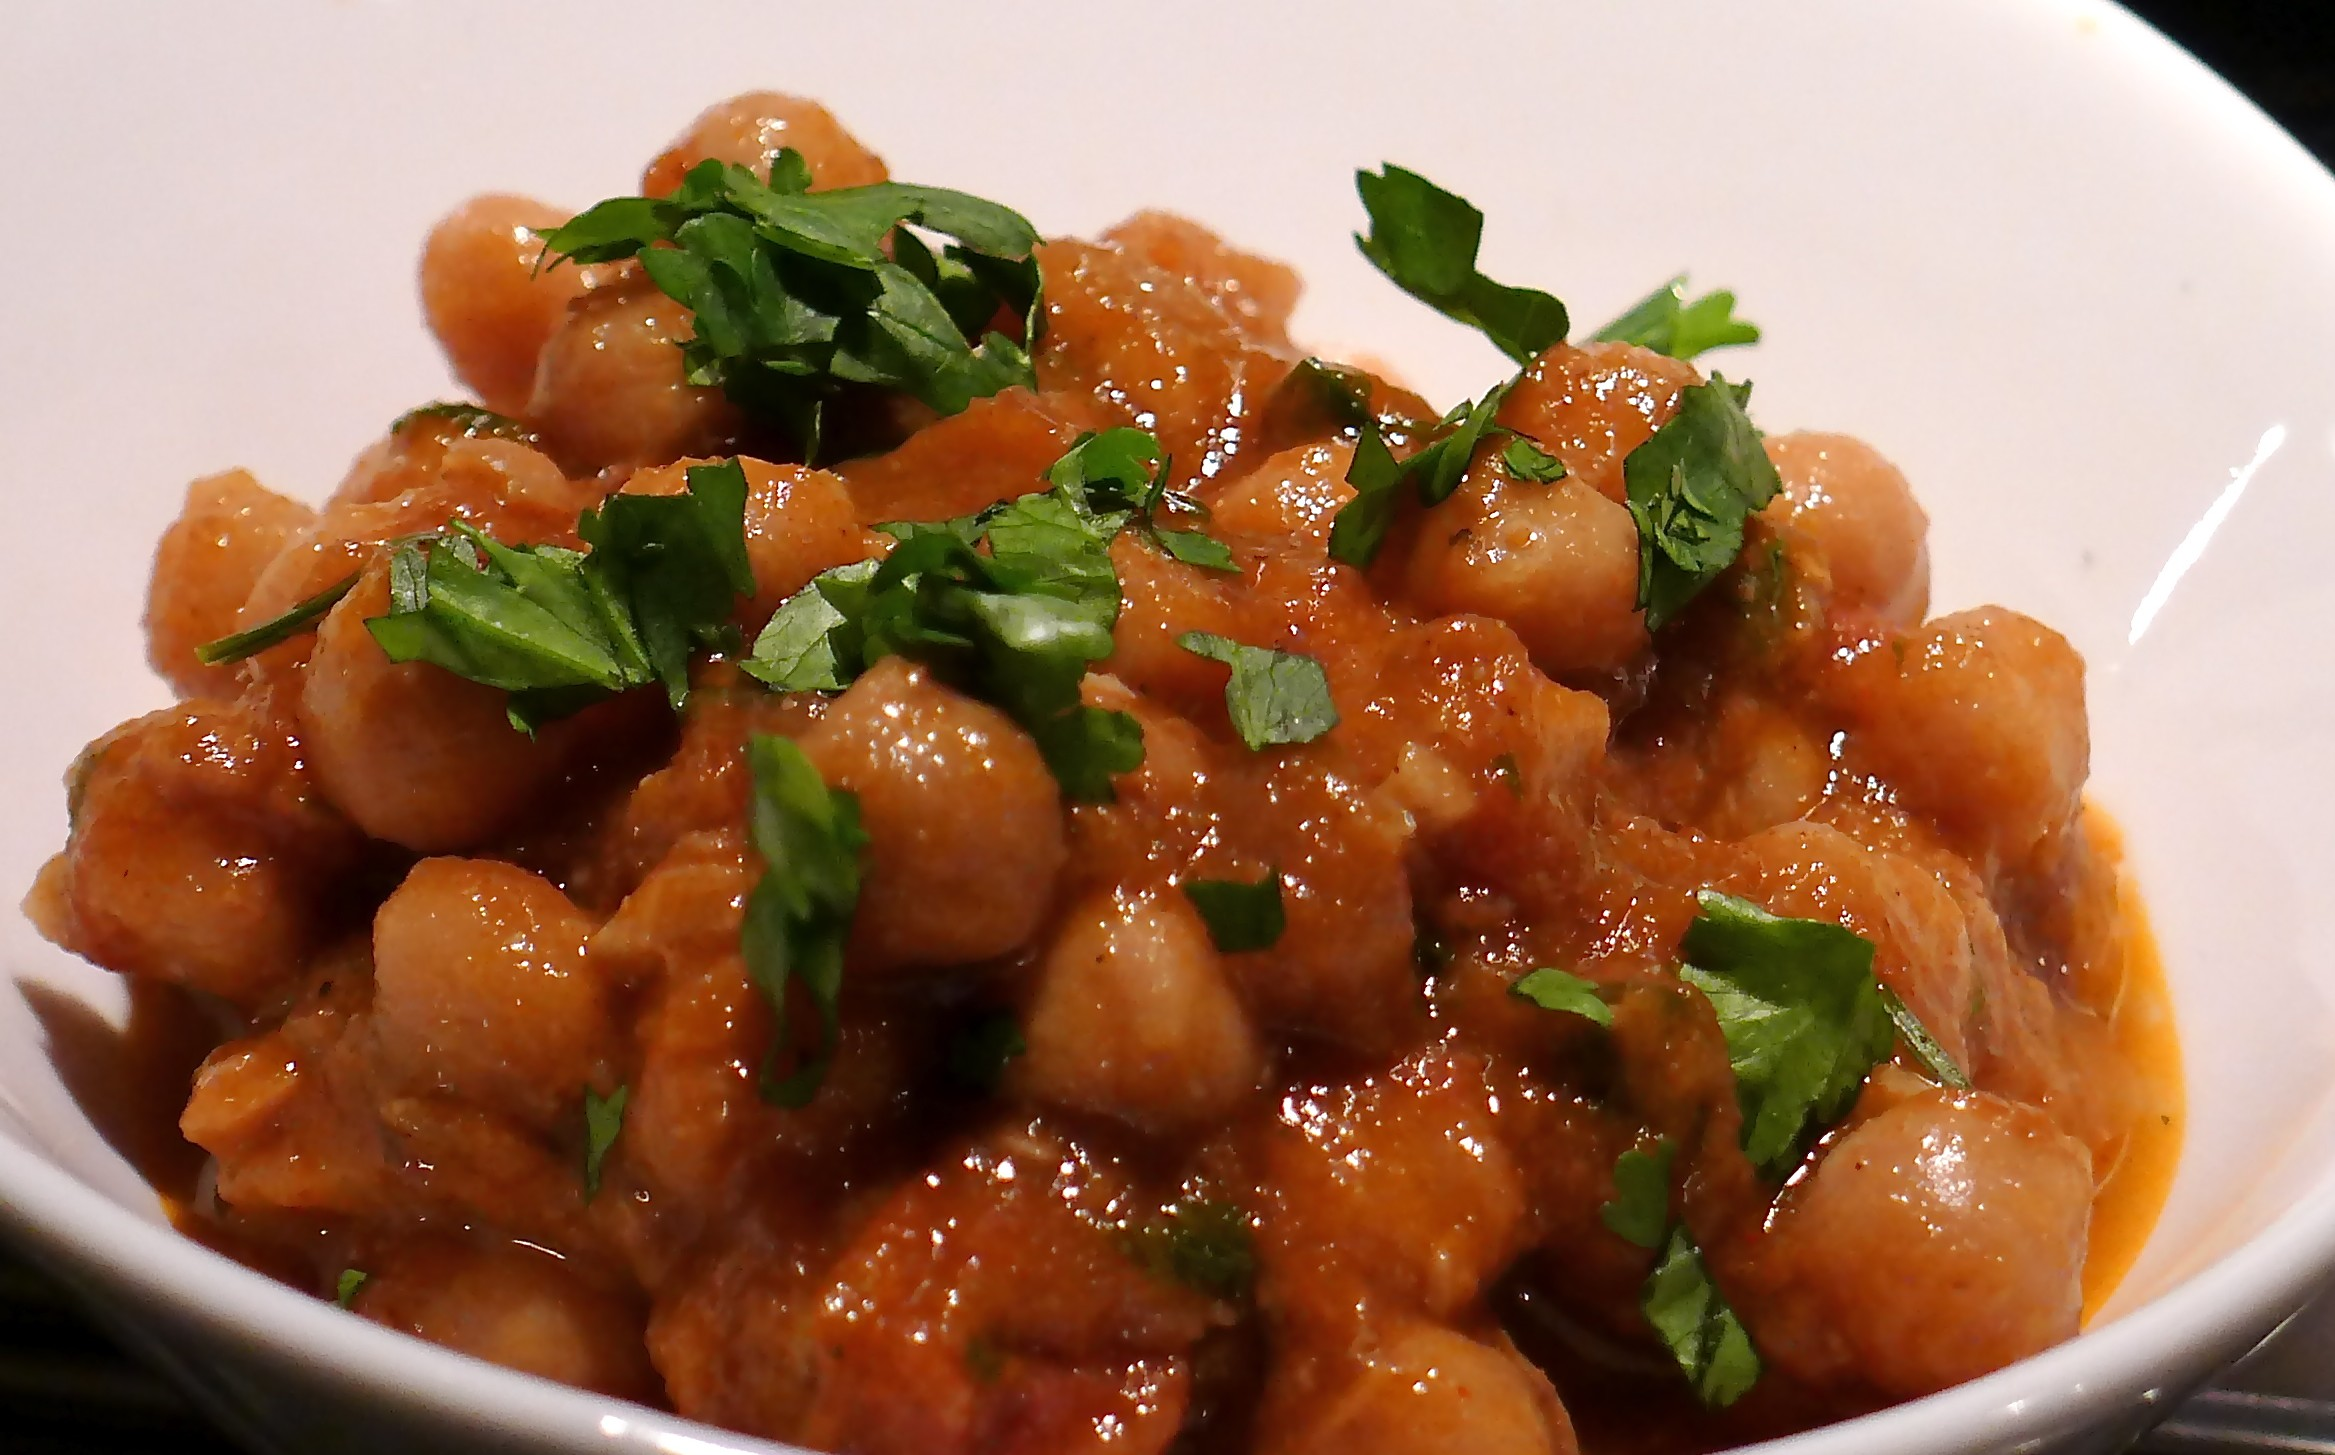 flavours creamy chickpeas a sticky toffee ish masala totally moreish